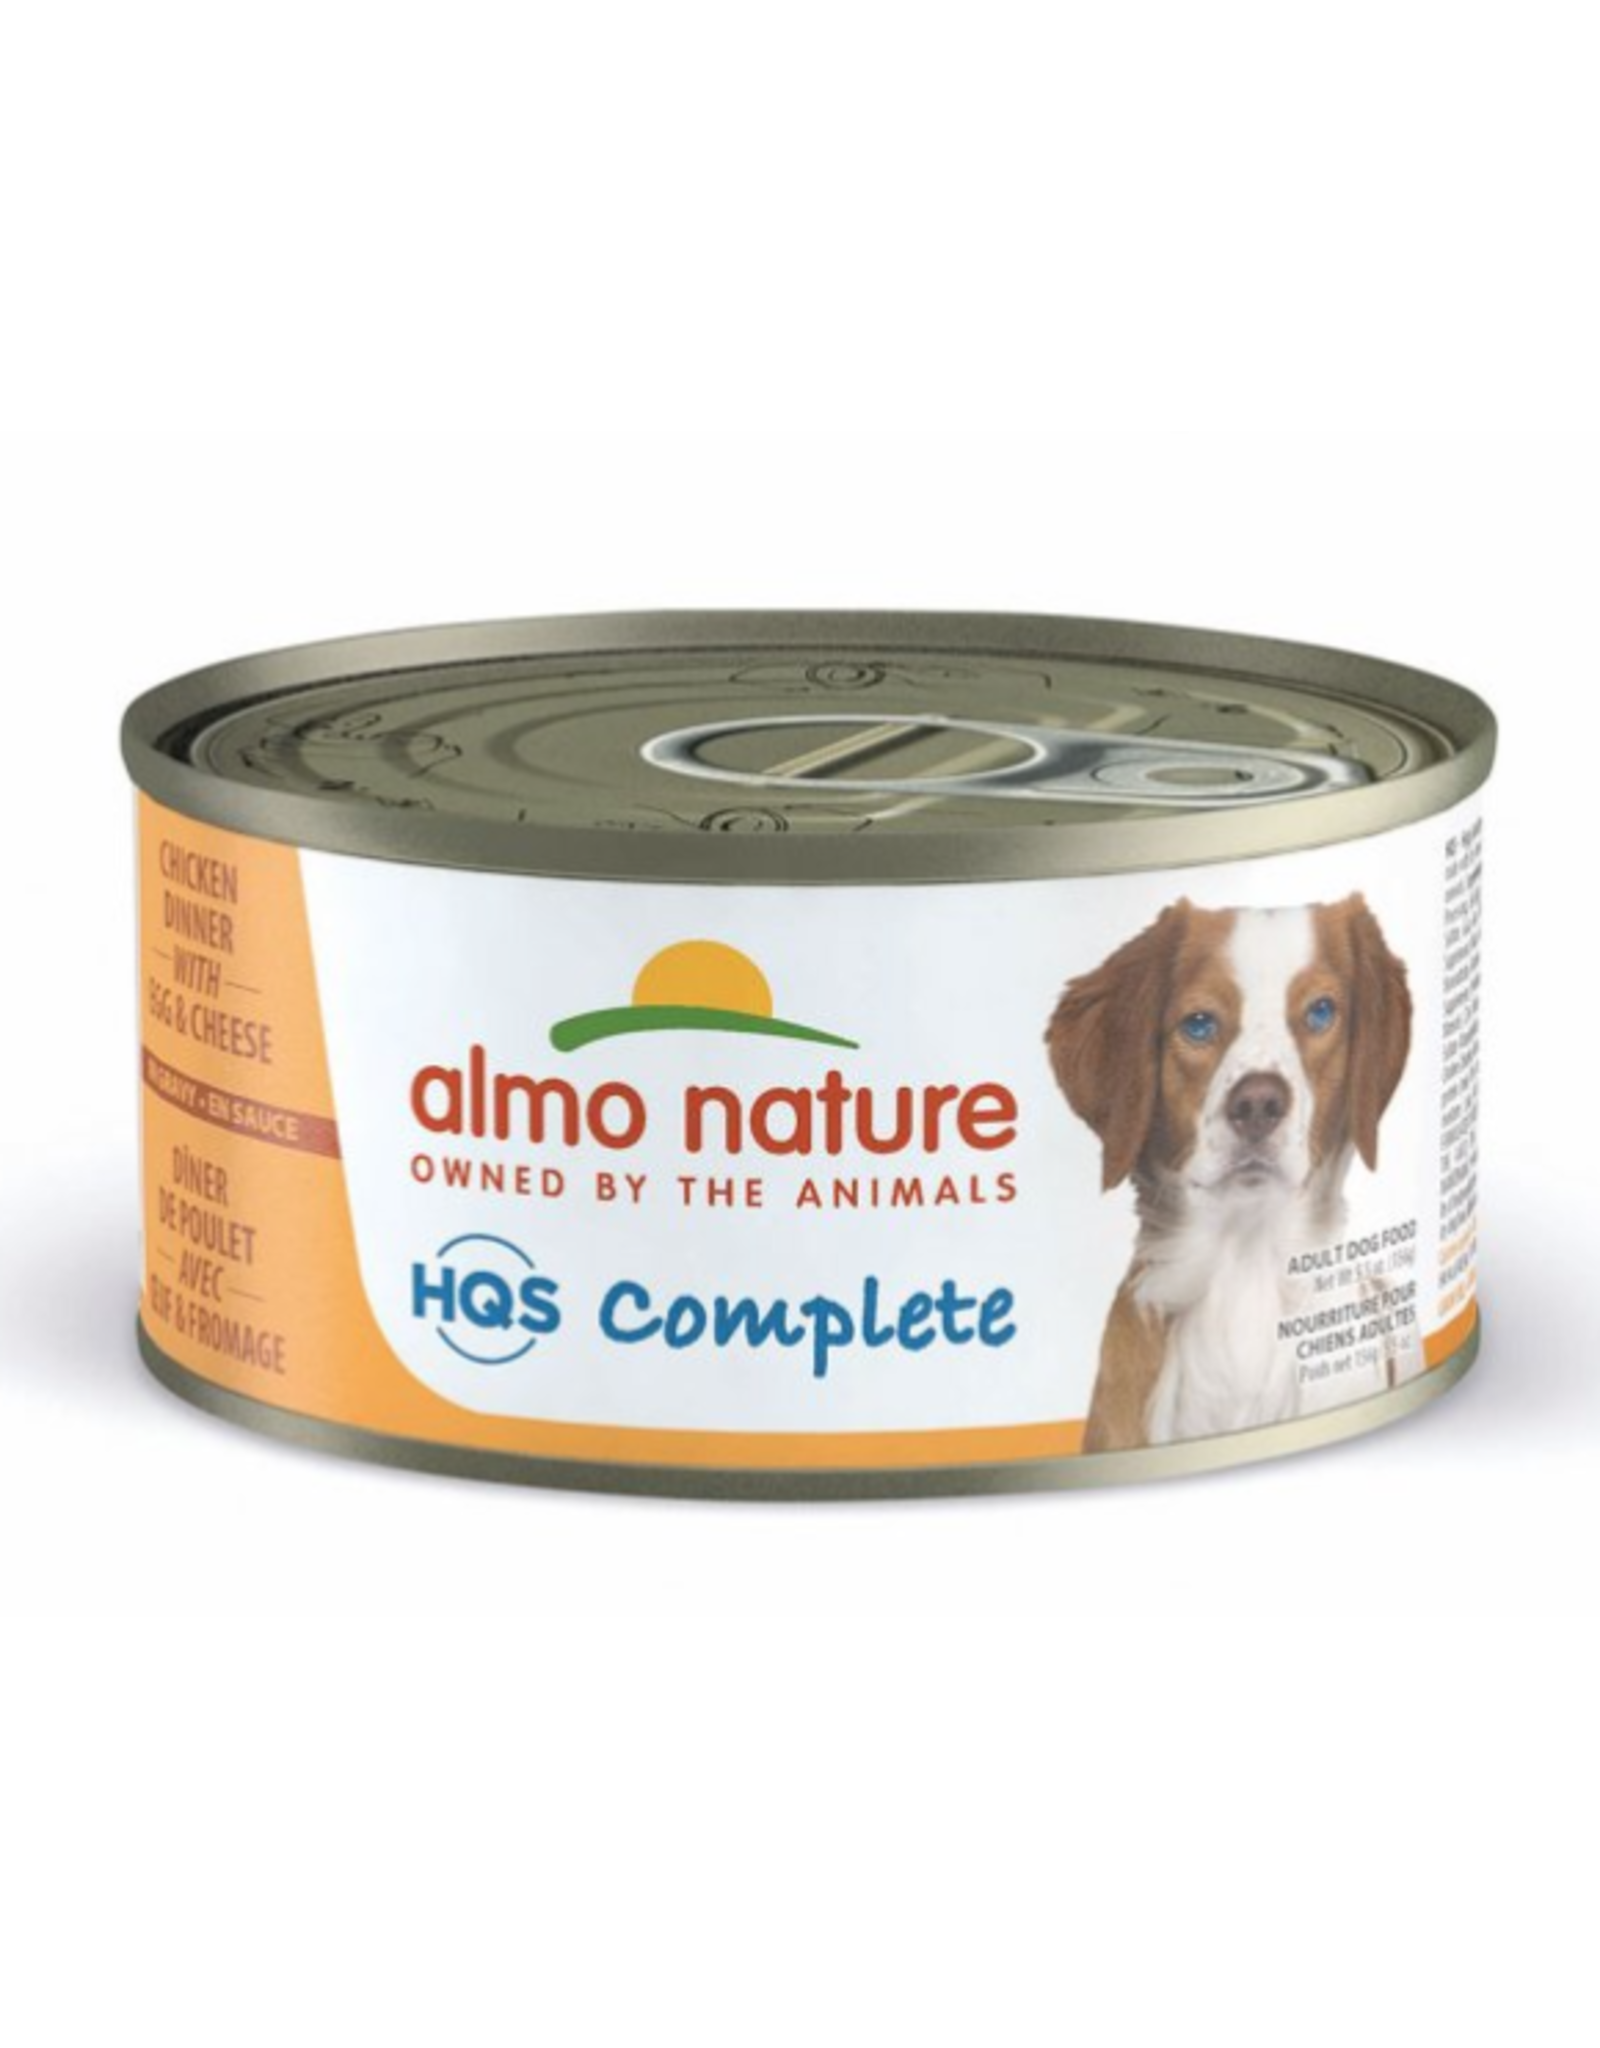 Almo Nature Almo Nature HQS Complete Chicken Dinner w/ Egg & Cheese Dog Food 5.5 Oz